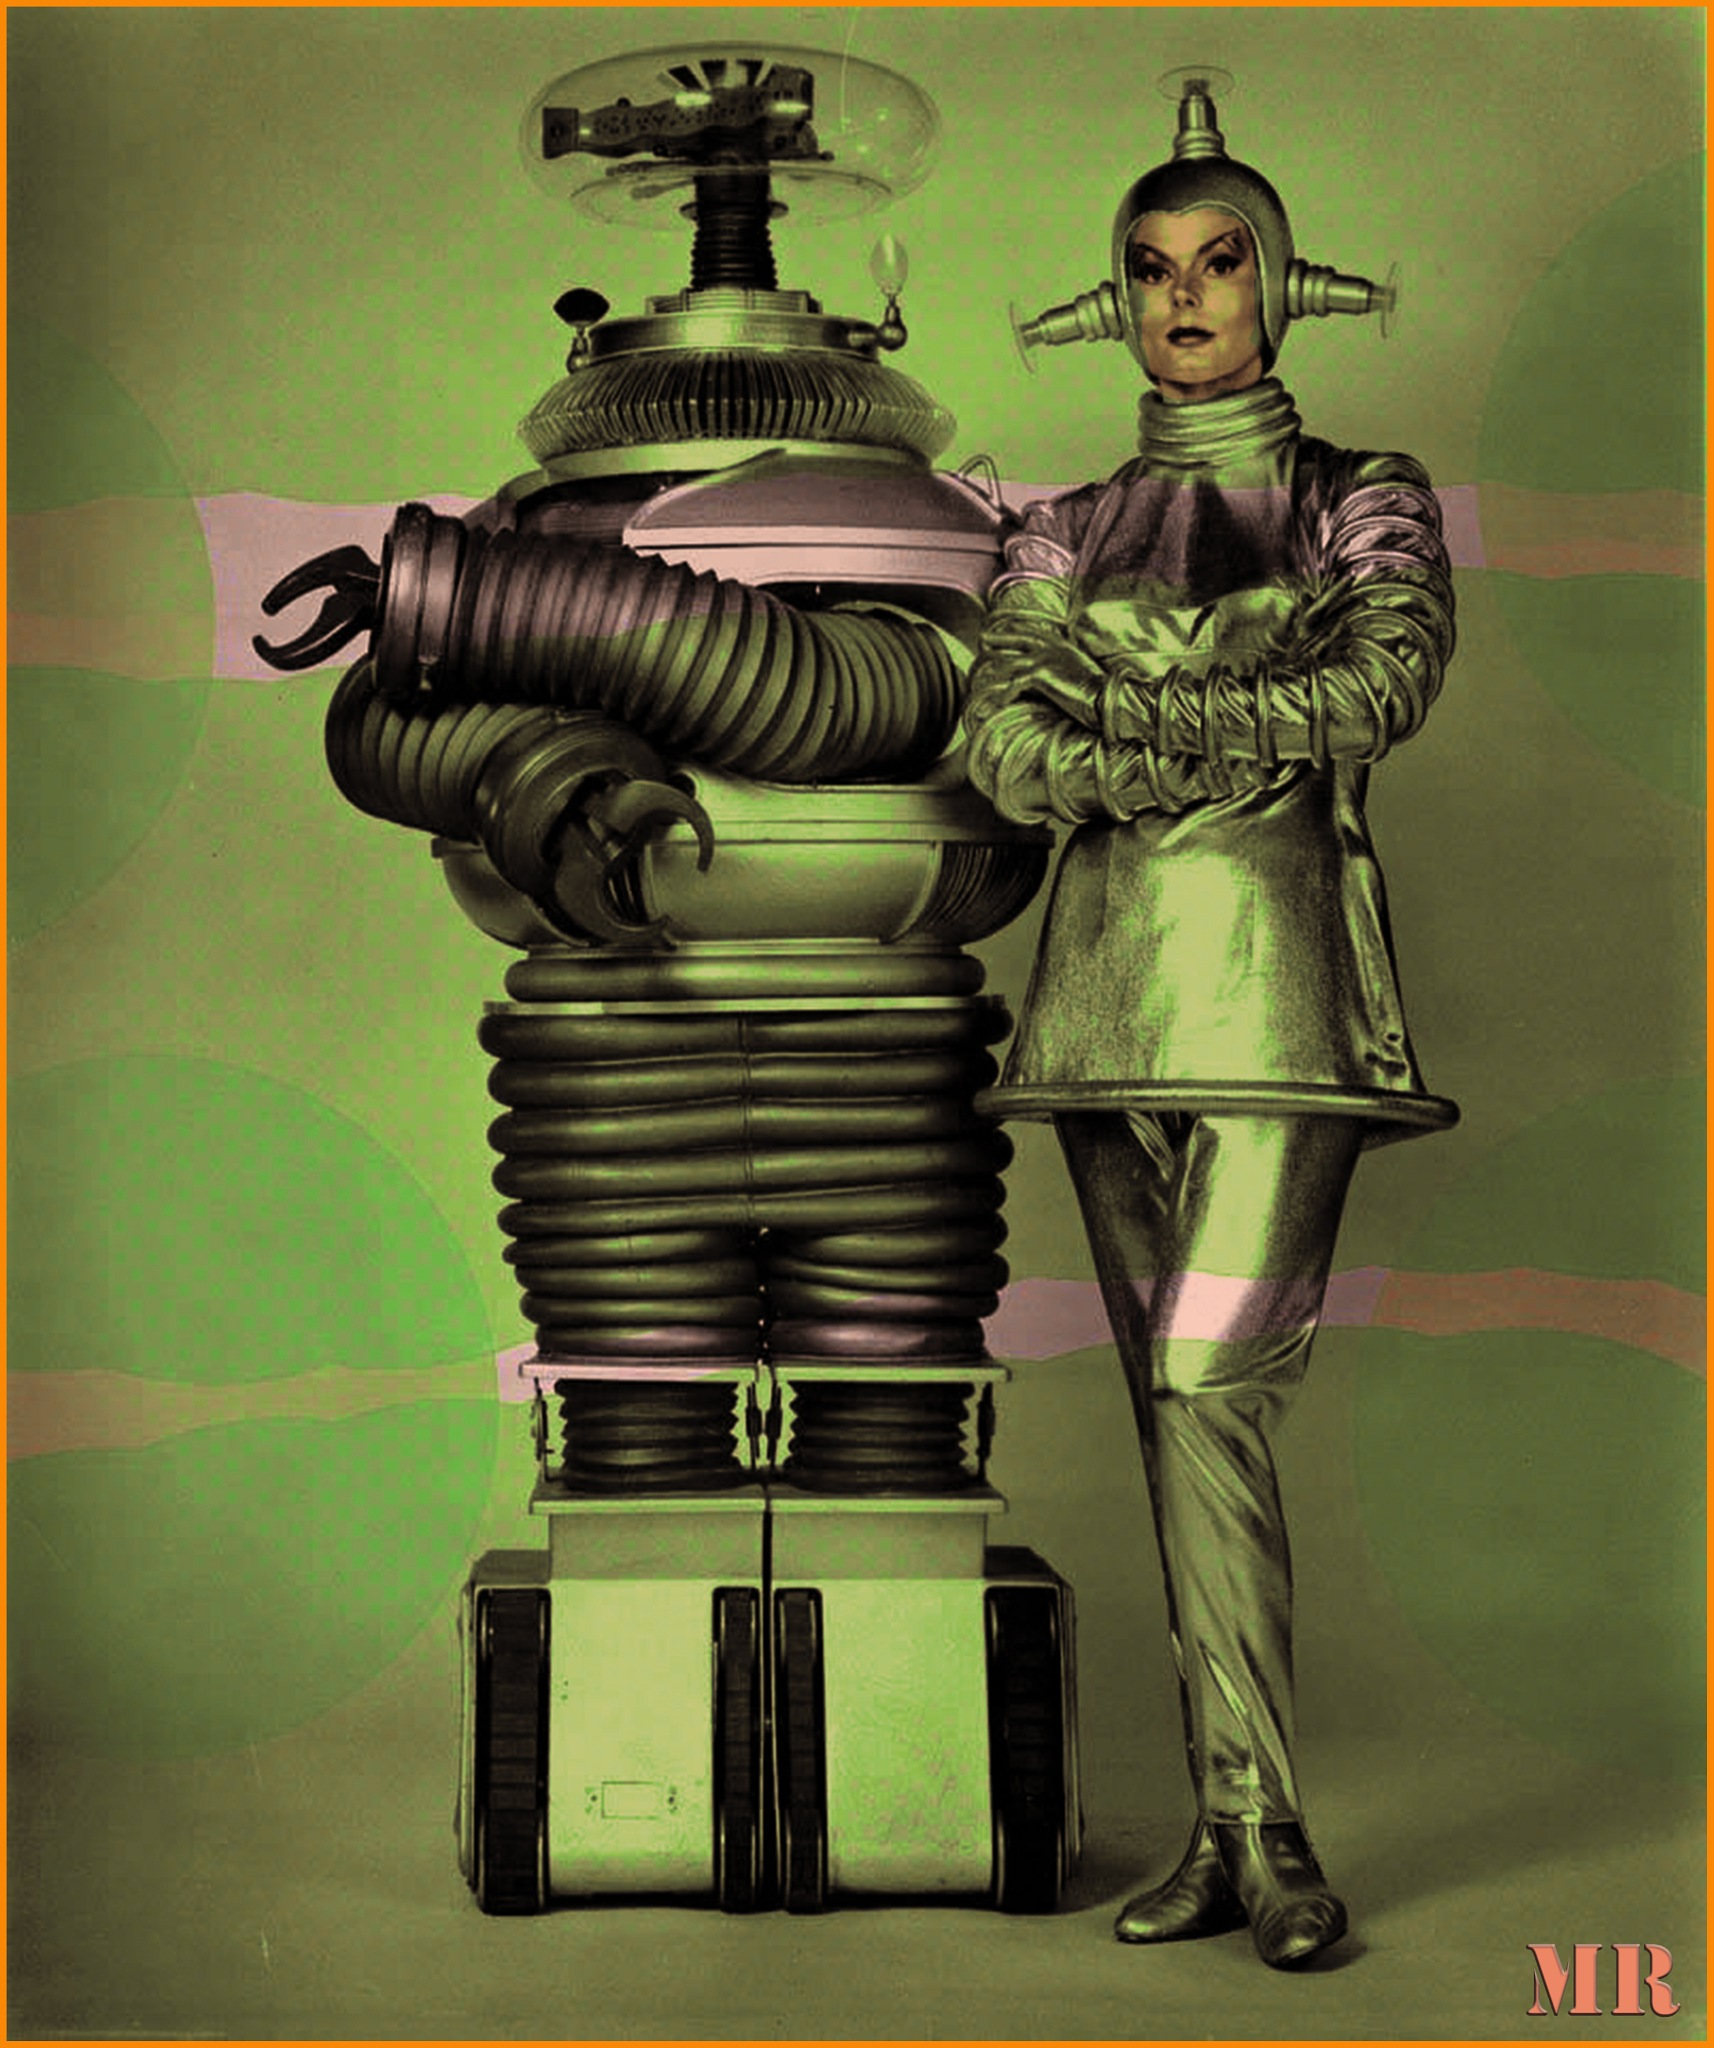 A science fiction photo from the 60´s by Mikael Rennerhorn